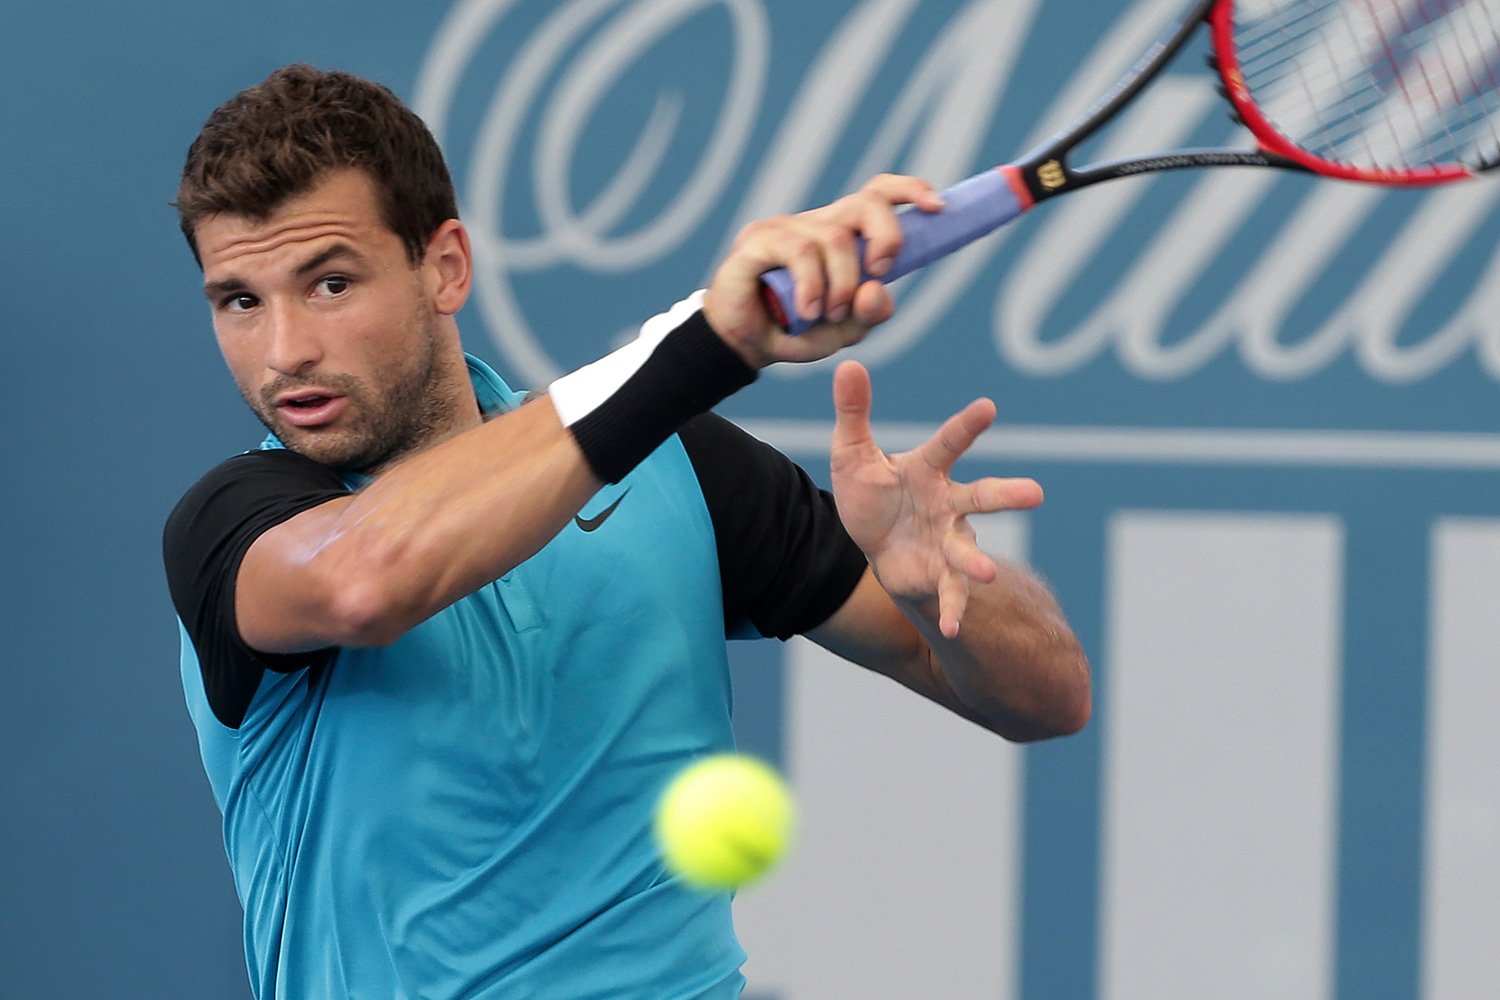 Why Dimitrov has the talent to be the next World Number 1